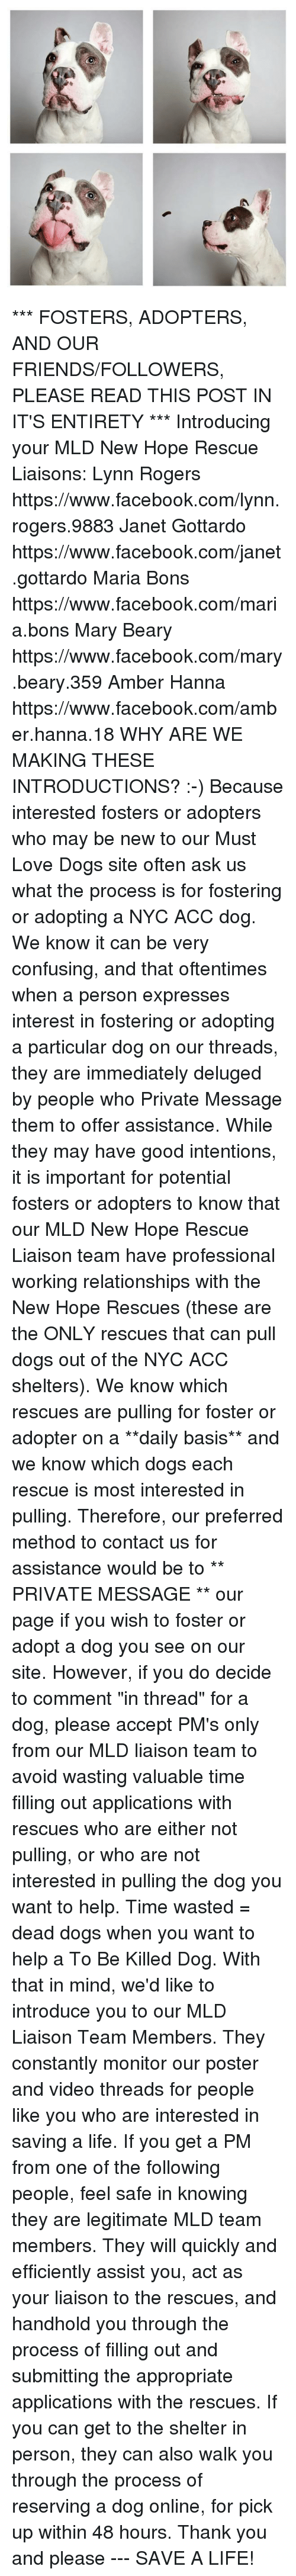 "Dogs, Facebook, and Friends: ***  FOSTERS, ADOPTERS, AND OUR FRIENDS/FOLLOWERS, PLEASE READ THIS POST IN IT'S ENTIRETY ***  Introducing your MLD New Hope Rescue Liaisons:  Lynn Rogers https://www.facebook.com/lynn.rogers.9883  Janet Gottardo https://www.facebook.com/janet.gottardo  Maria Bons https://www.facebook.com/maria.bons  Mary Beary https://www.facebook.com/mary.beary.359  Amber Hanna https://www.facebook.com/amber.hanna.18  WHY ARE WE MAKING THESE INTRODUCTIONS?  :-)  Because interested fosters or adopters who may be new to our Must Love Dogs site often ask us what the process is for fostering or adopting a NYC ACC dog. We know it can be very confusing, and that oftentimes when a person expresses interest in fostering or adopting a particular dog on our threads, they are immediately deluged by people who Private Message them to offer assistance.   While they may have good intentions, it is important for potential fosters or adopters to know that our MLD New Hope Rescue Liaison team have professional working relationships with the New Hope Rescues (these are the ONLY rescues that can pull dogs out of the NYC ACC shelters). We know which rescues are pulling for foster or adopter on a **daily basis** and we know which dogs each rescue is most interested in pulling.   Therefore, our preferred method to contact us for assistance would be to ** PRIVATE MESSAGE ** our page if you wish to foster or adopt a dog you see on our site. However, if you do decide to comment ""in thread"" for a dog, please accept PM's only from our MLD liaison team to avoid wasting valuable time filling out applications with rescues who are either not pulling, or who are not interested in pulling the dog you want to help. Time wasted = dead dogs when you want to help a To Be Killed Dog.  With that in mind, we'd like to introduce you to our MLD Liaison Team Members. They constantly monitor our poster and video threads for people like you who are interested in saving a life. If you get a PM from one of the following people, feel safe in knowing they are legitimate MLD team members. They will quickly and efficiently assist you, act as your liaison to the rescues, and handhold you through the process of filling out and submitting the appropriate applications with the rescues. If you can get to the shelter in person, they can also walk you through the process of reserving a dog online, for pick up within 48 hours.  Thank you and please --- SAVE A LIFE!"